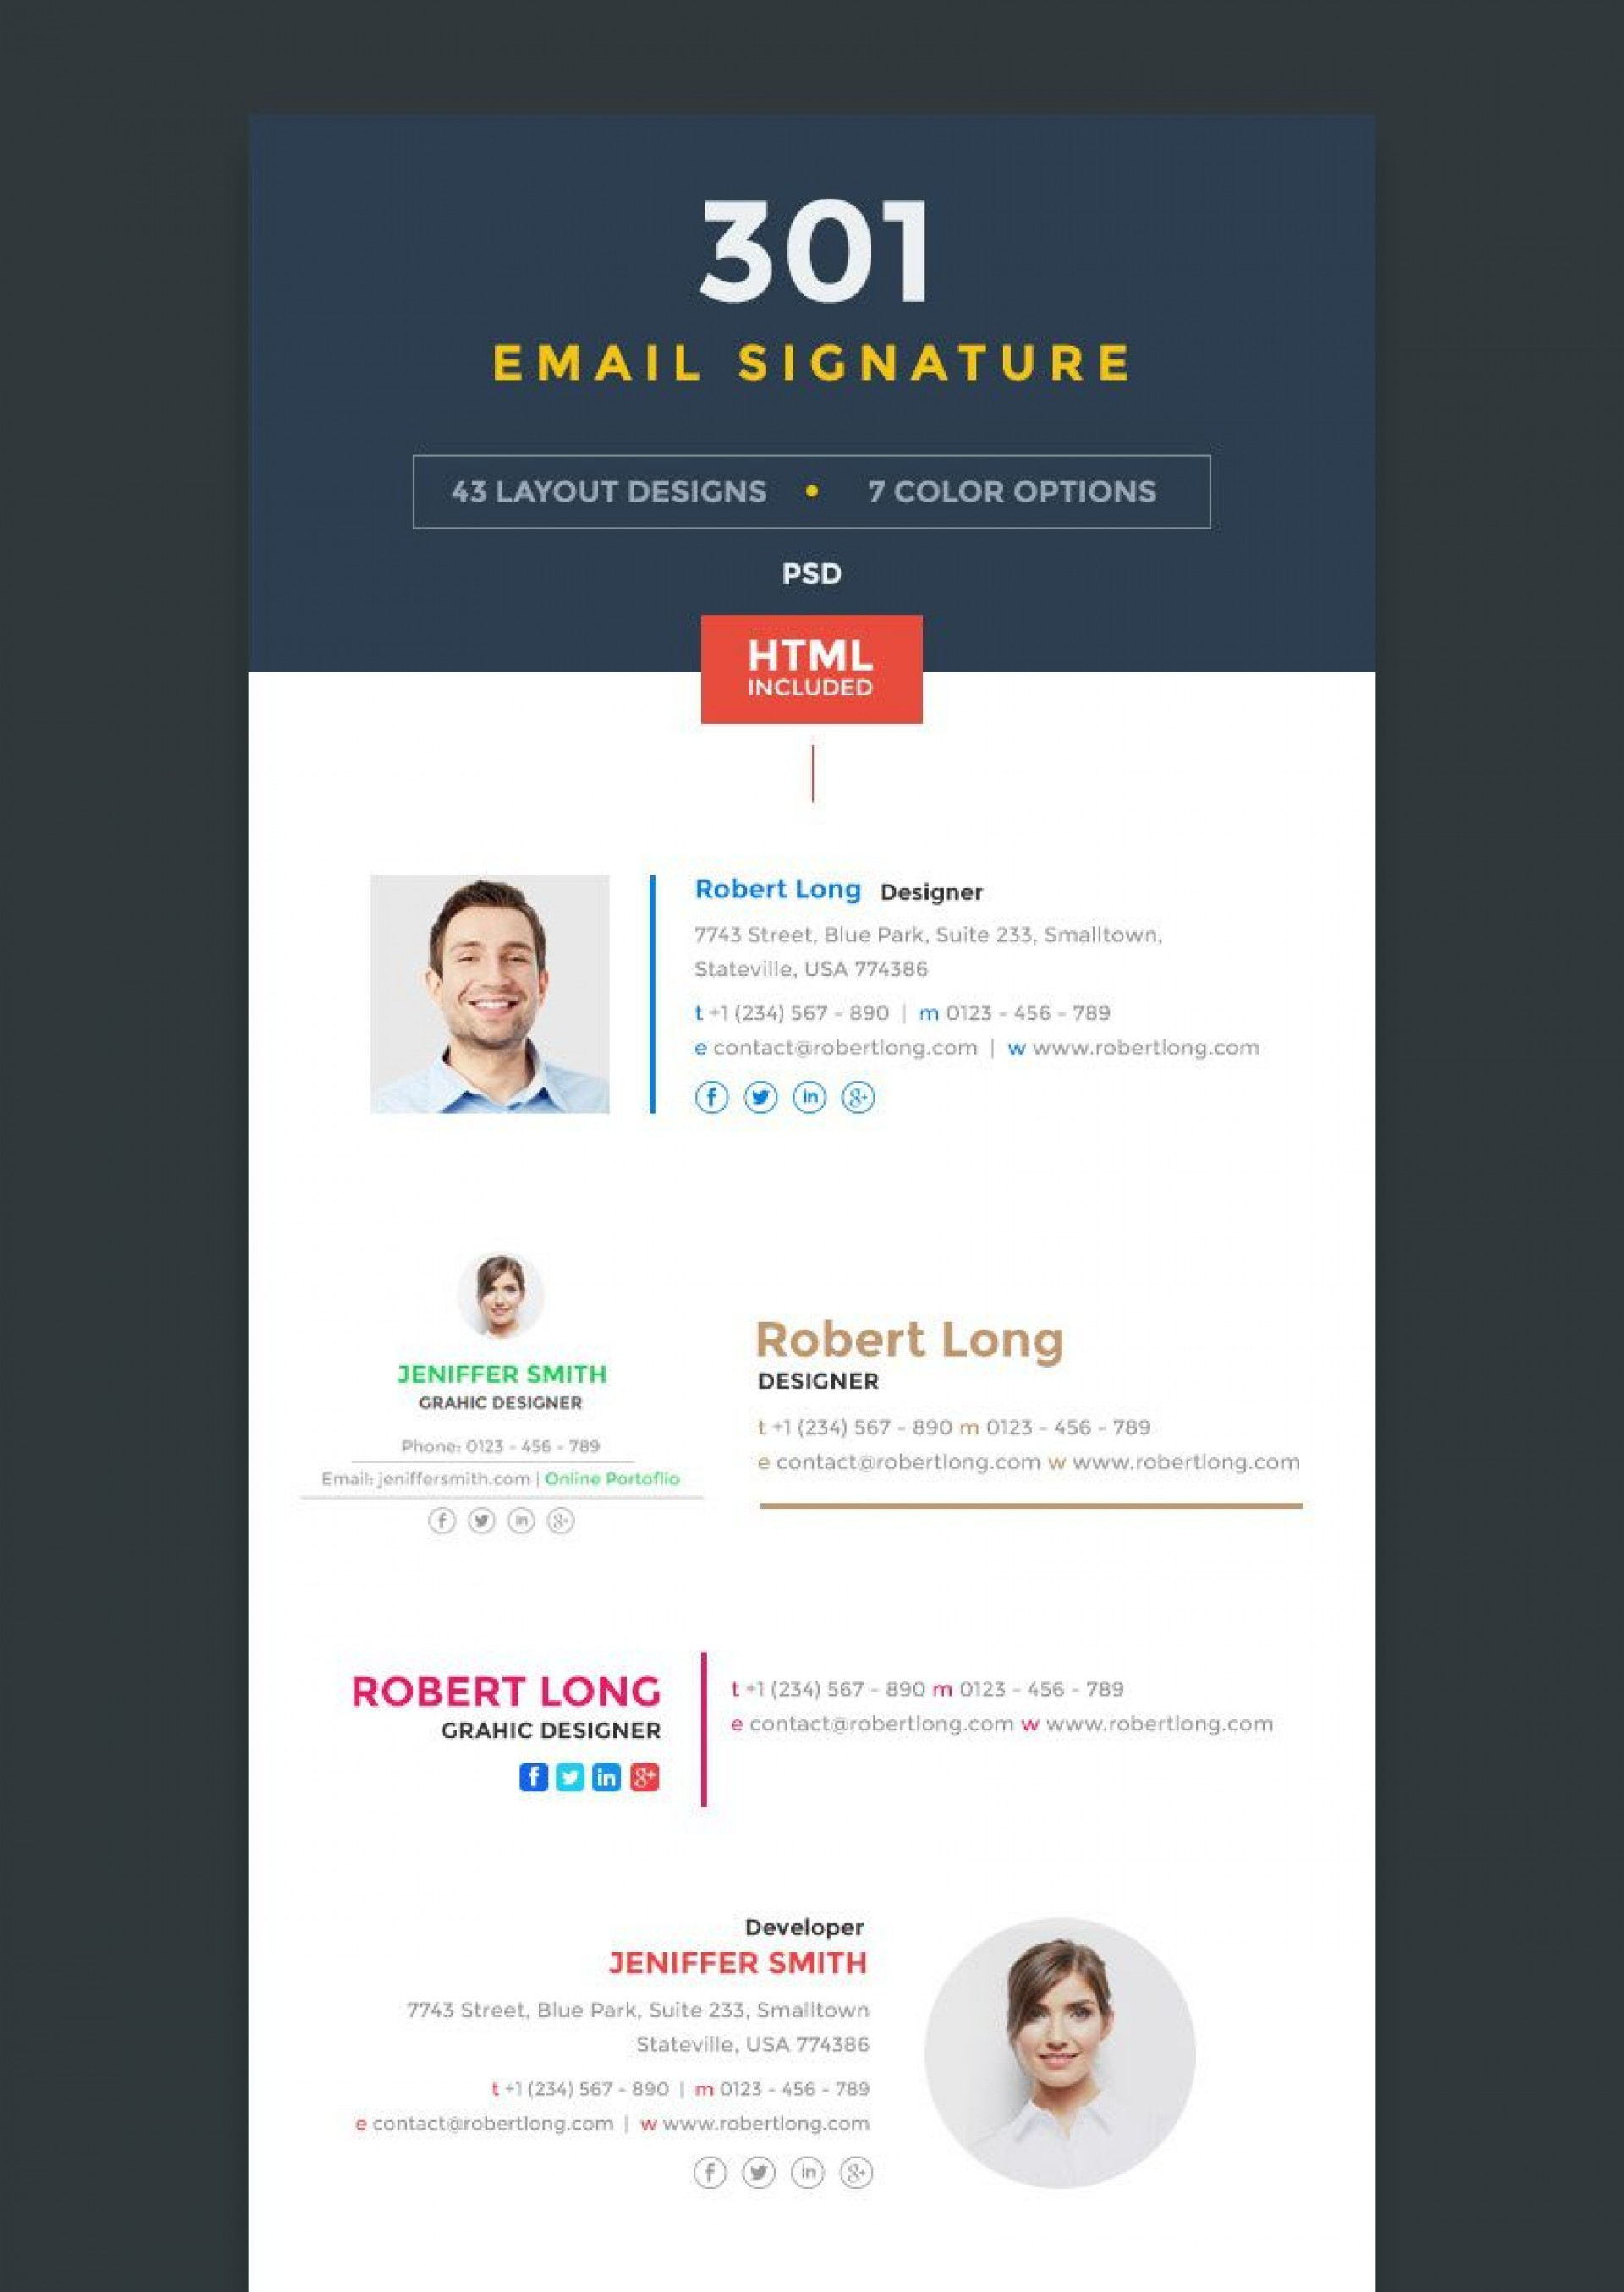 000 Simple Email Signature Format For Outlook Highest Quality  Example Template Microsoft1920